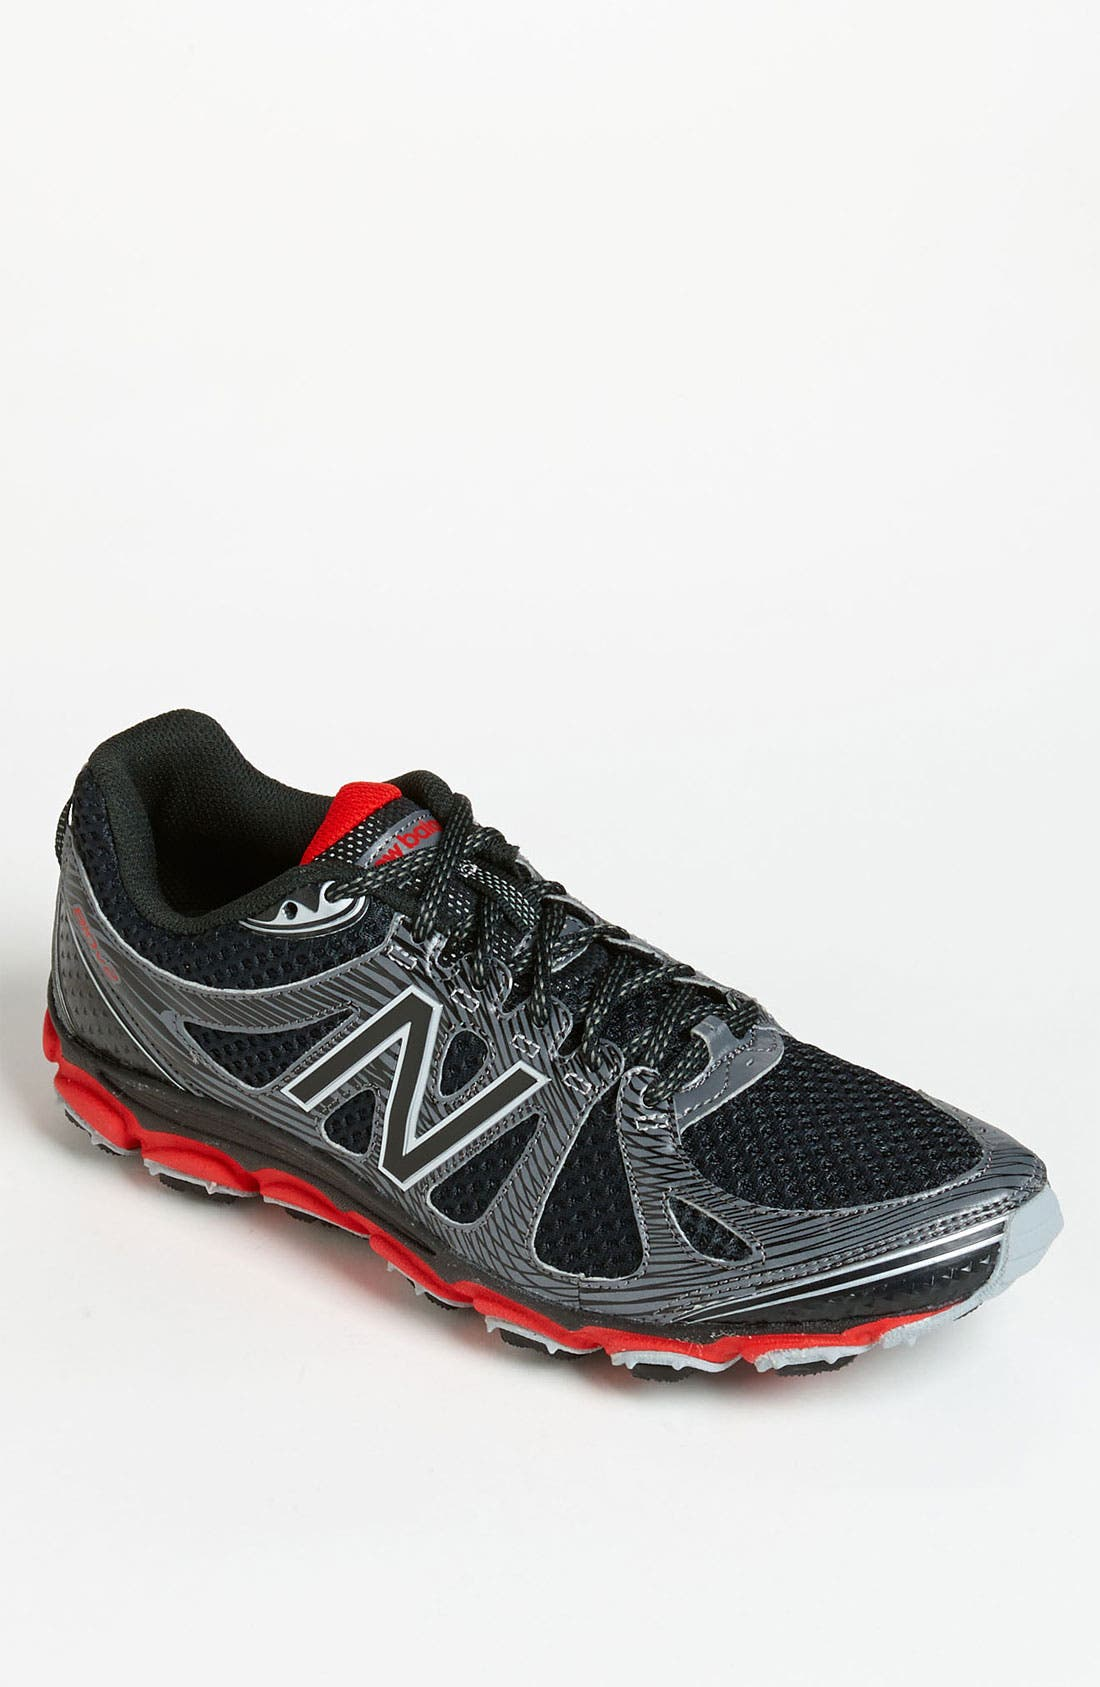 Alternate Image 1 Selected - New Balance '810v2' Trail Running Shoe (Men)